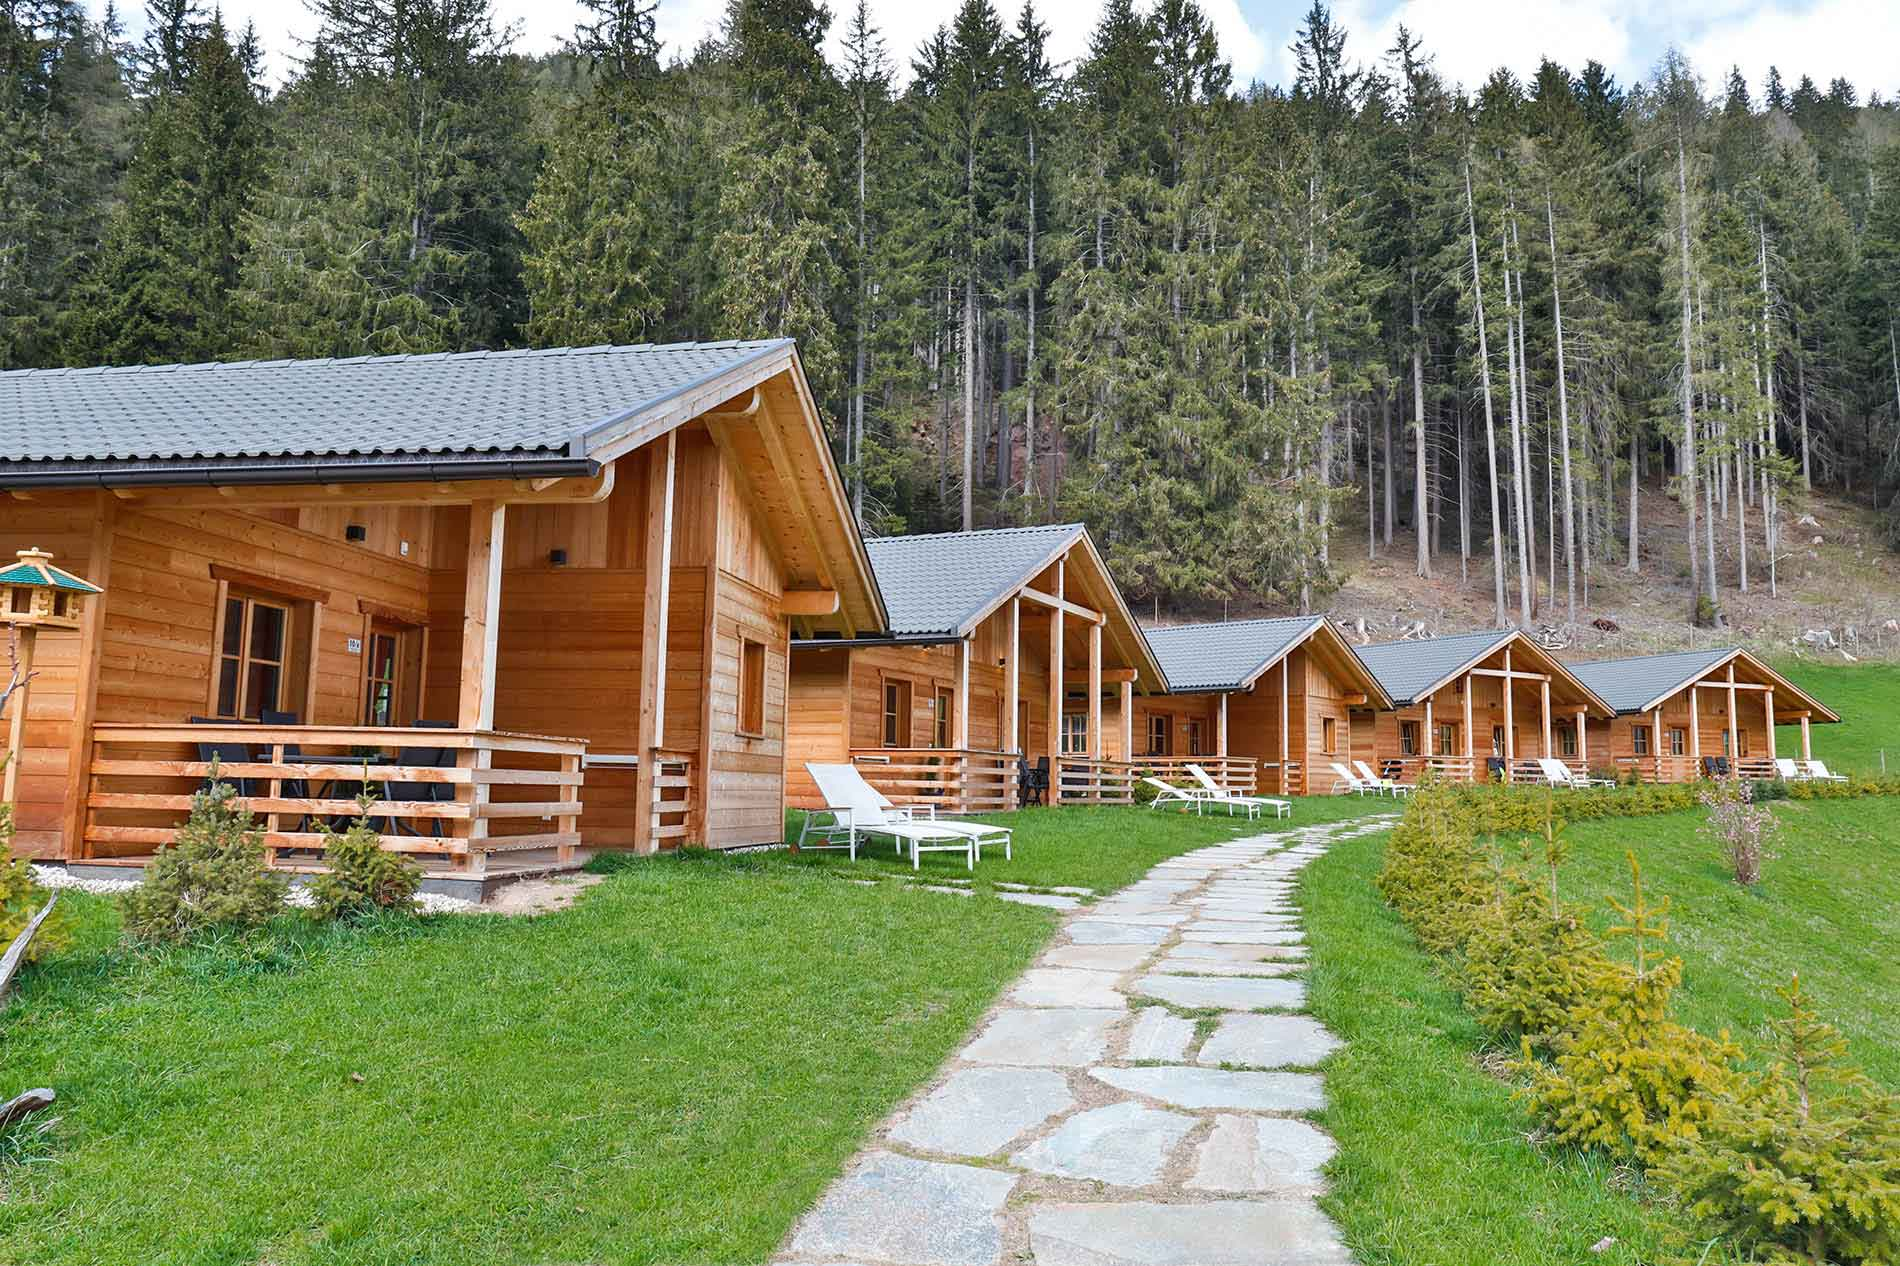 Chalets in the Dolomites